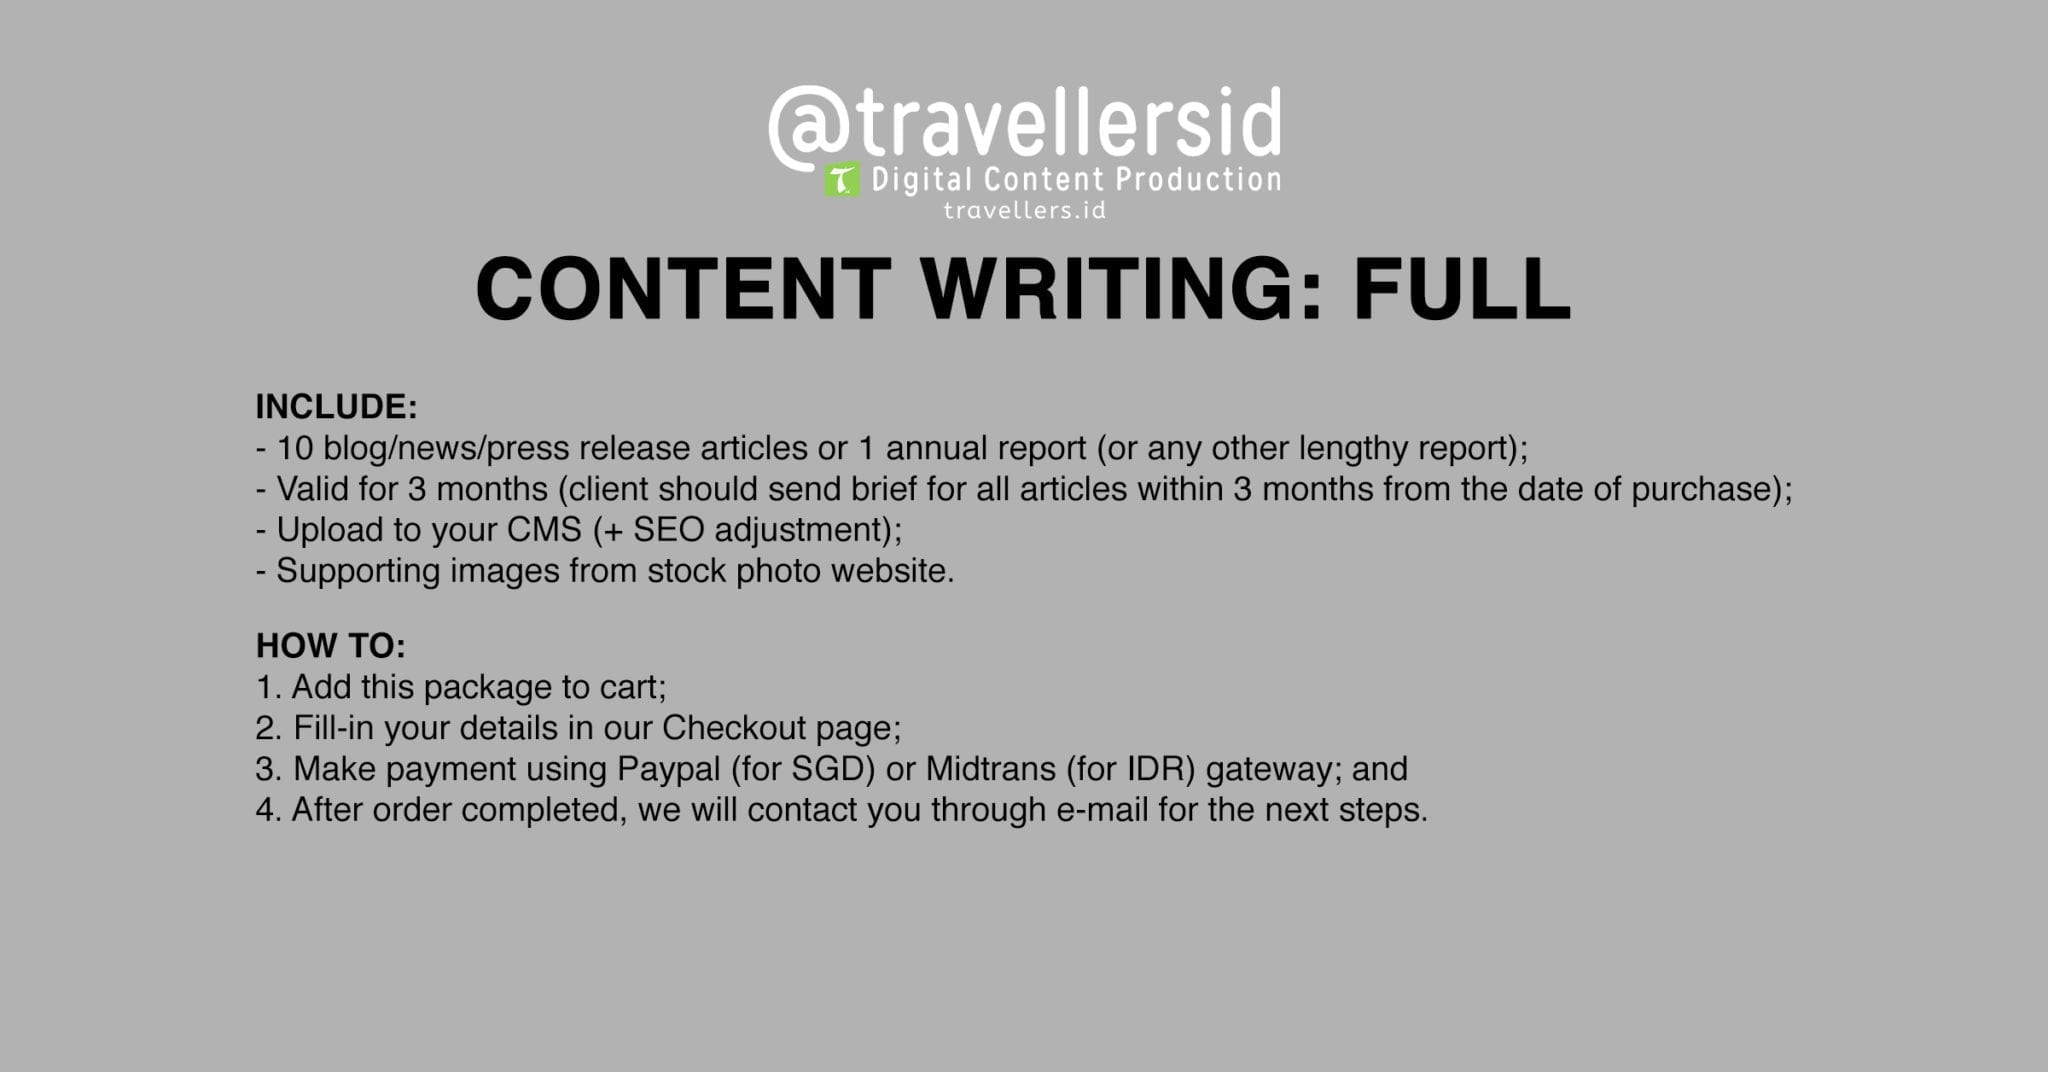 @TravellersID Content Writing Services - Full